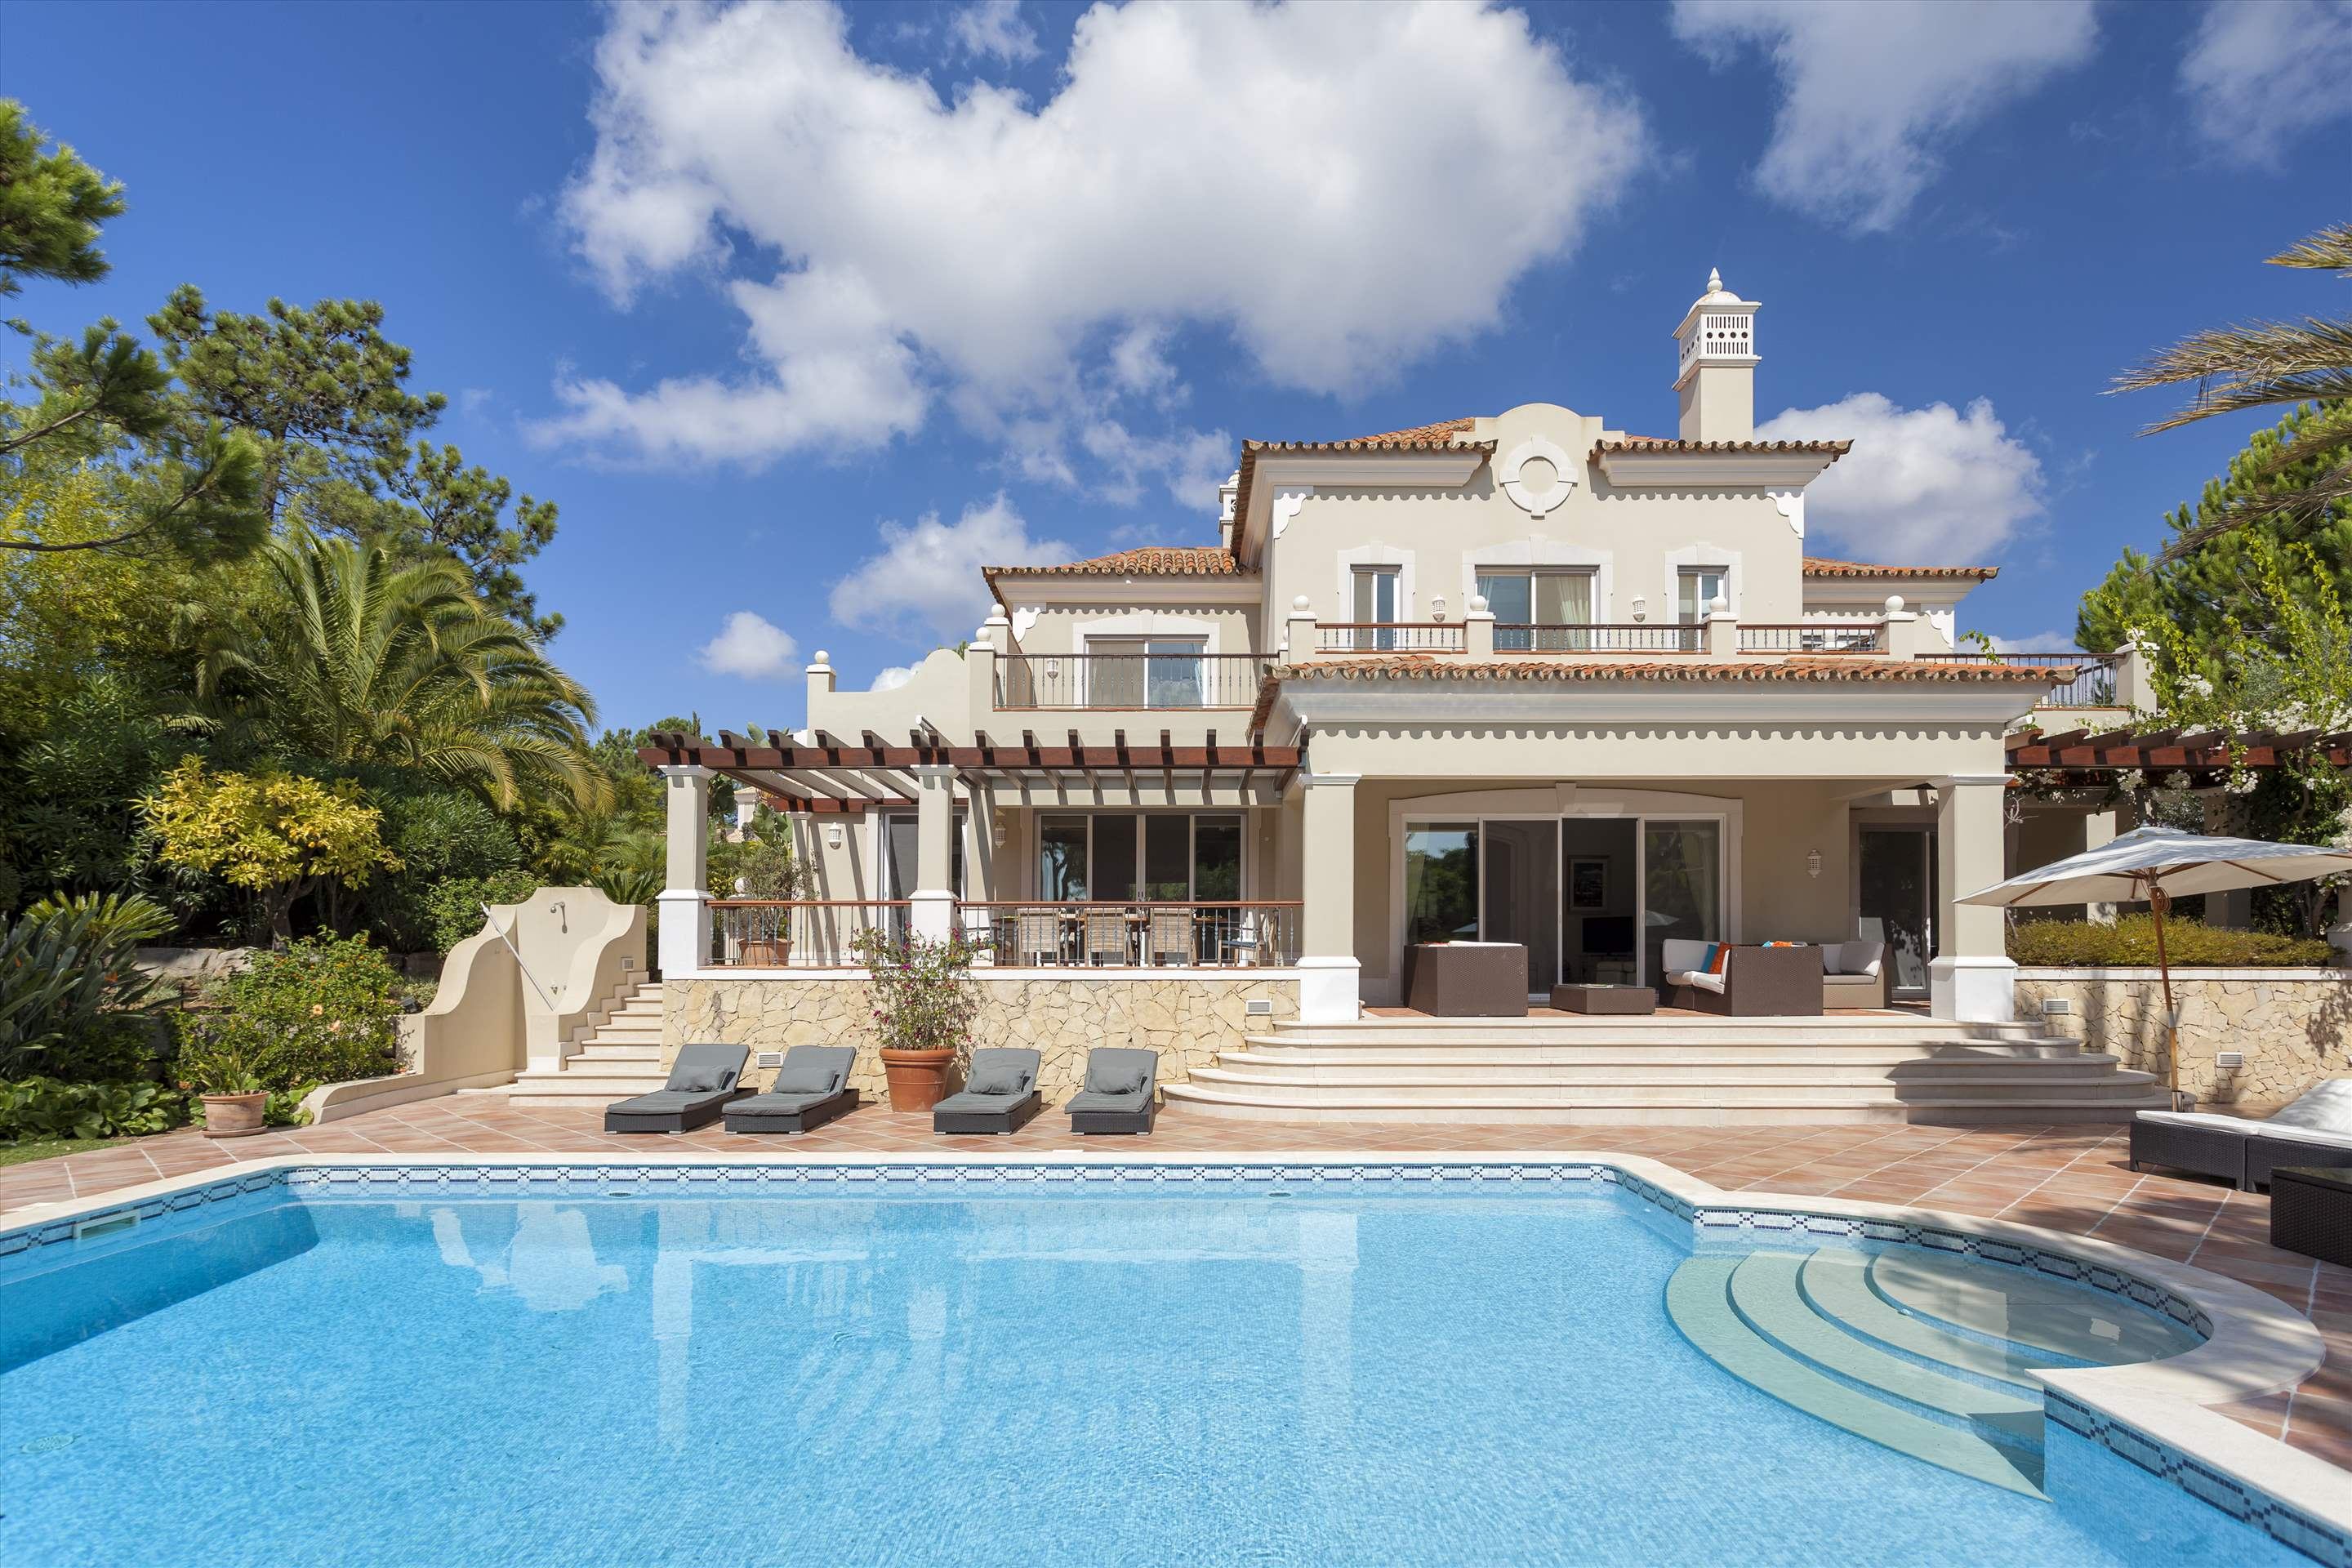 Villa Campainha, 4 Bedroom Rental, 4 bedroom villa in Quinta do Lago, Algarve Photo #5